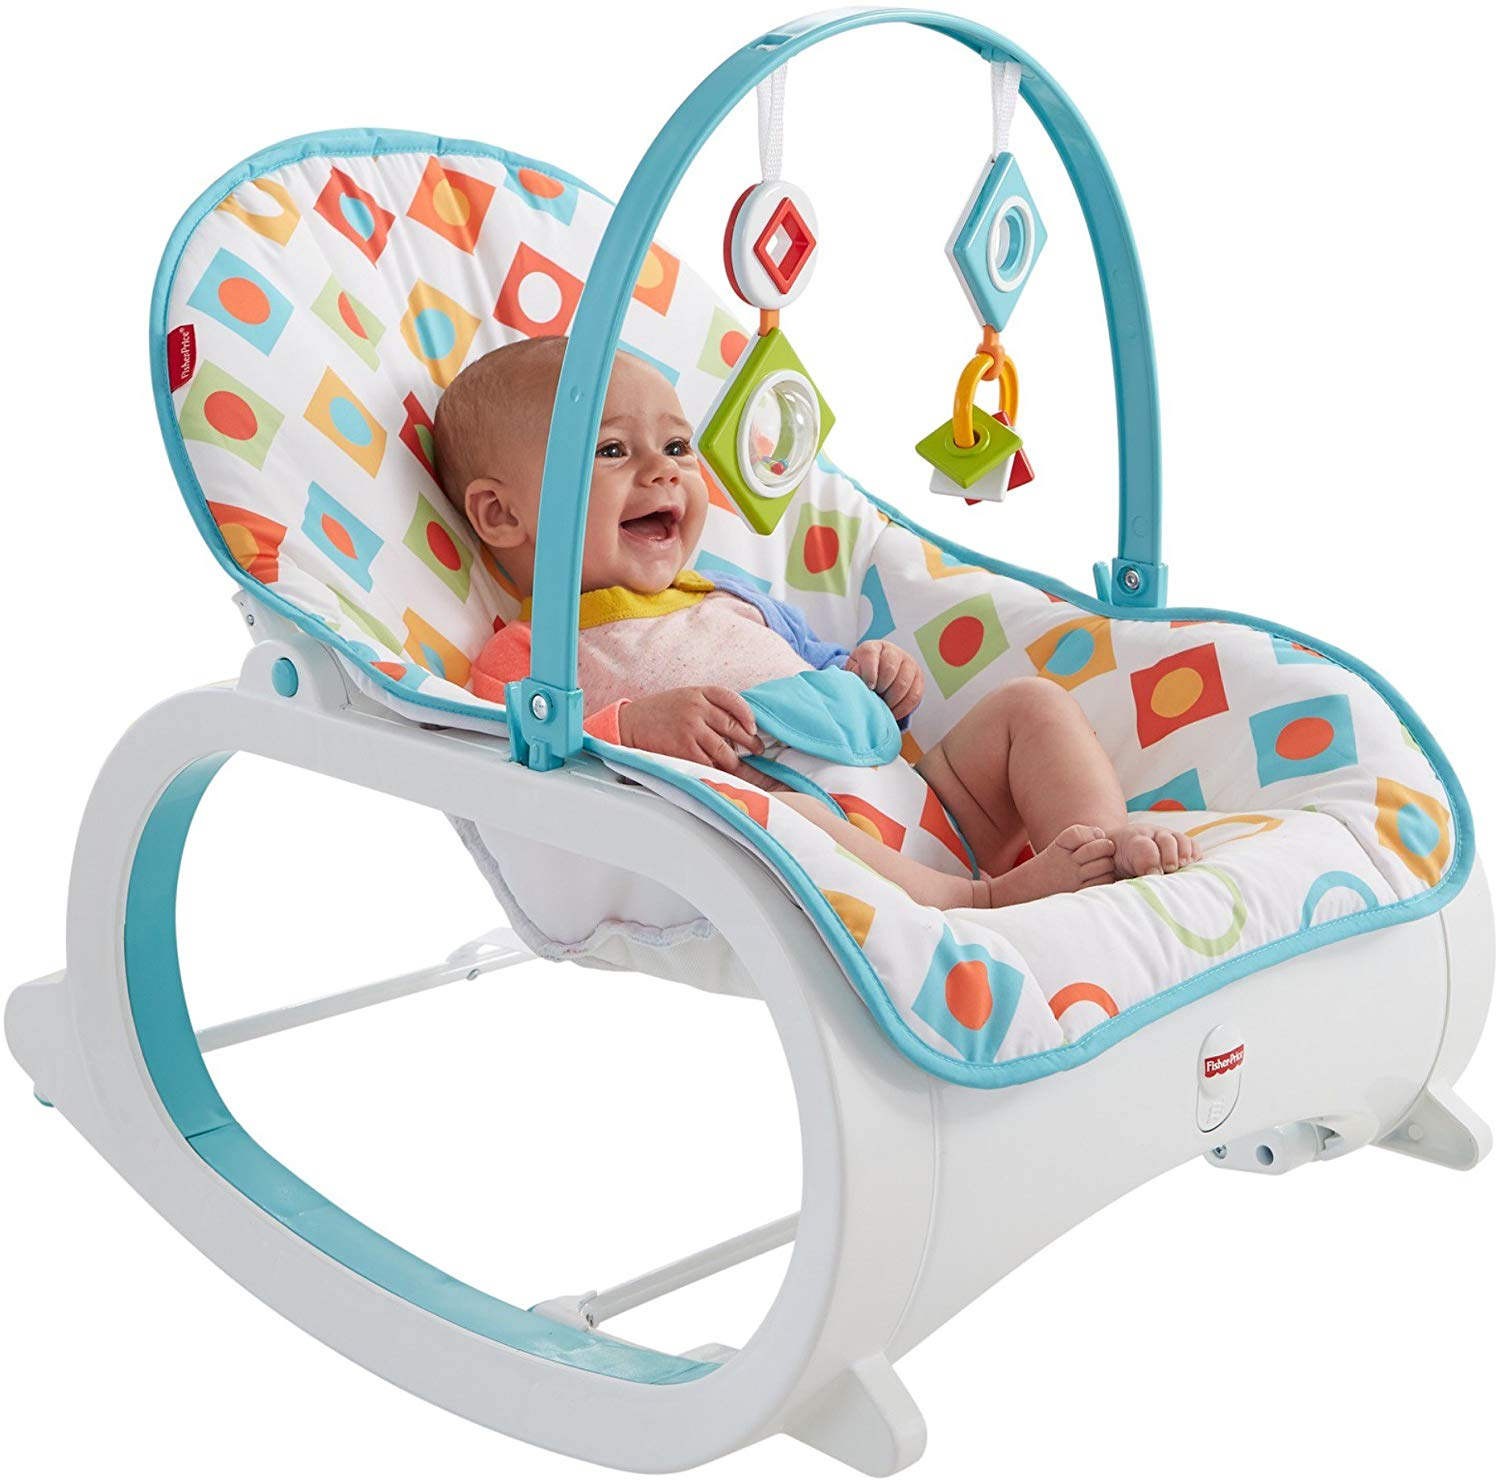 Review of Fisher-Price Infant-to-Toddler Rocker - Geo Diamonds